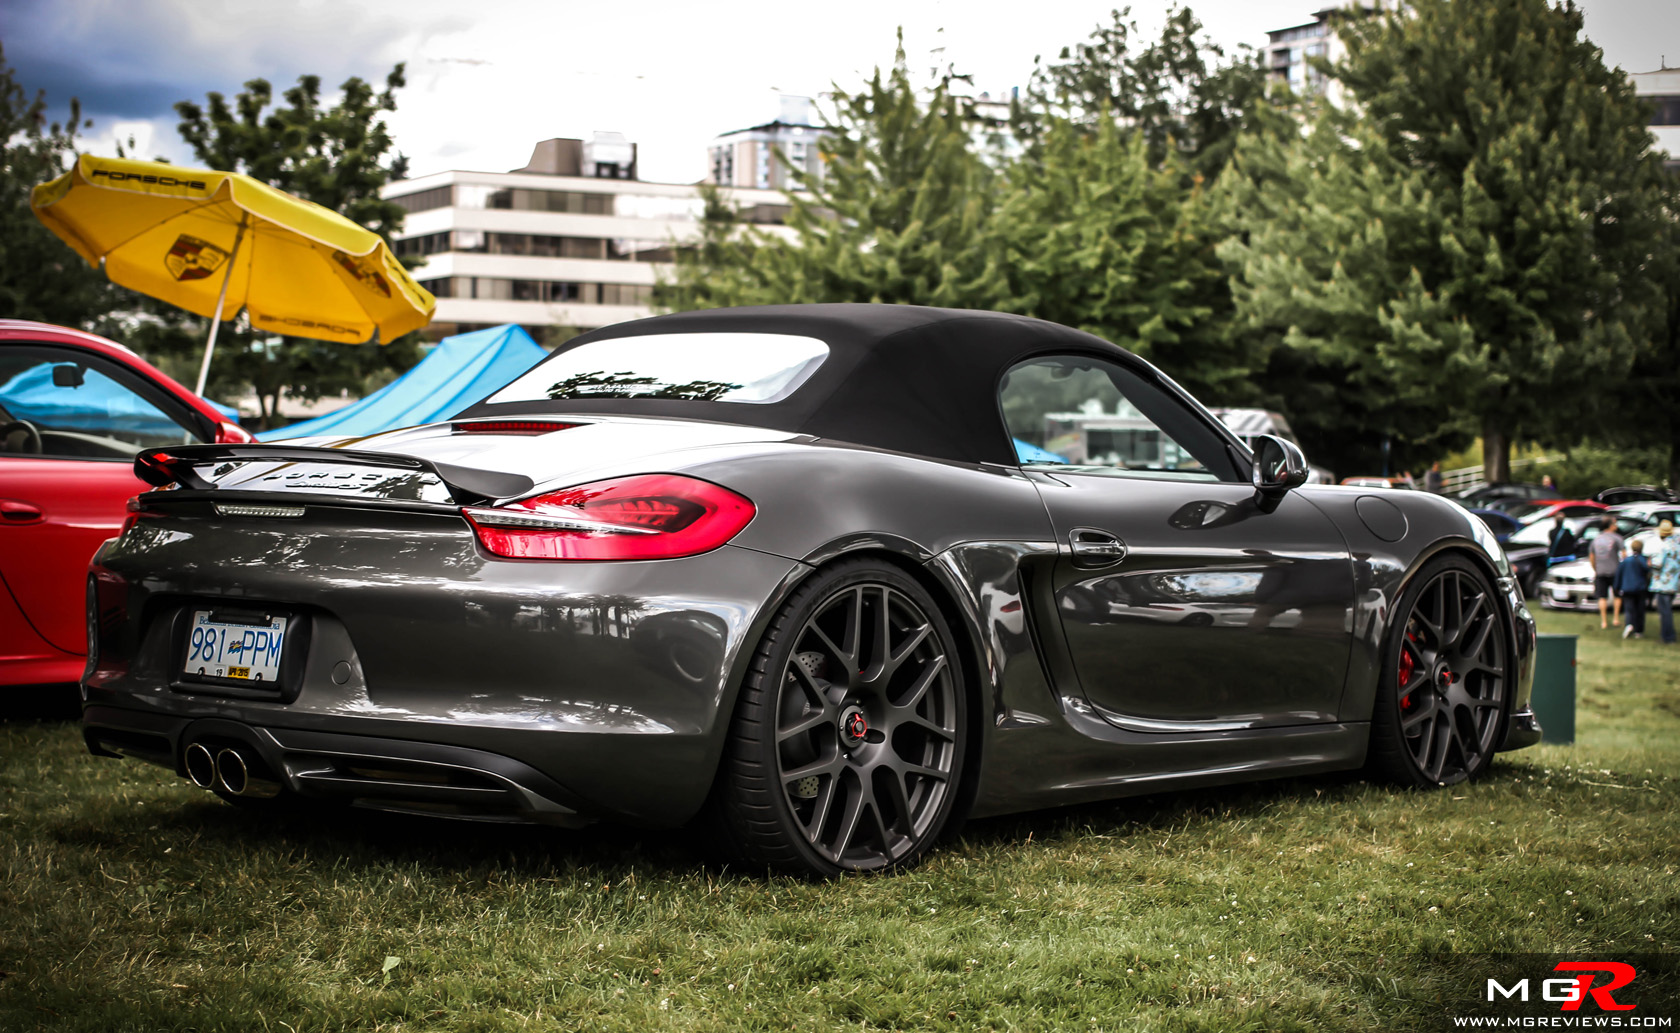 Bmw North Vancouver >> Photos: 2014 German Car Festival – M.G.Reviews